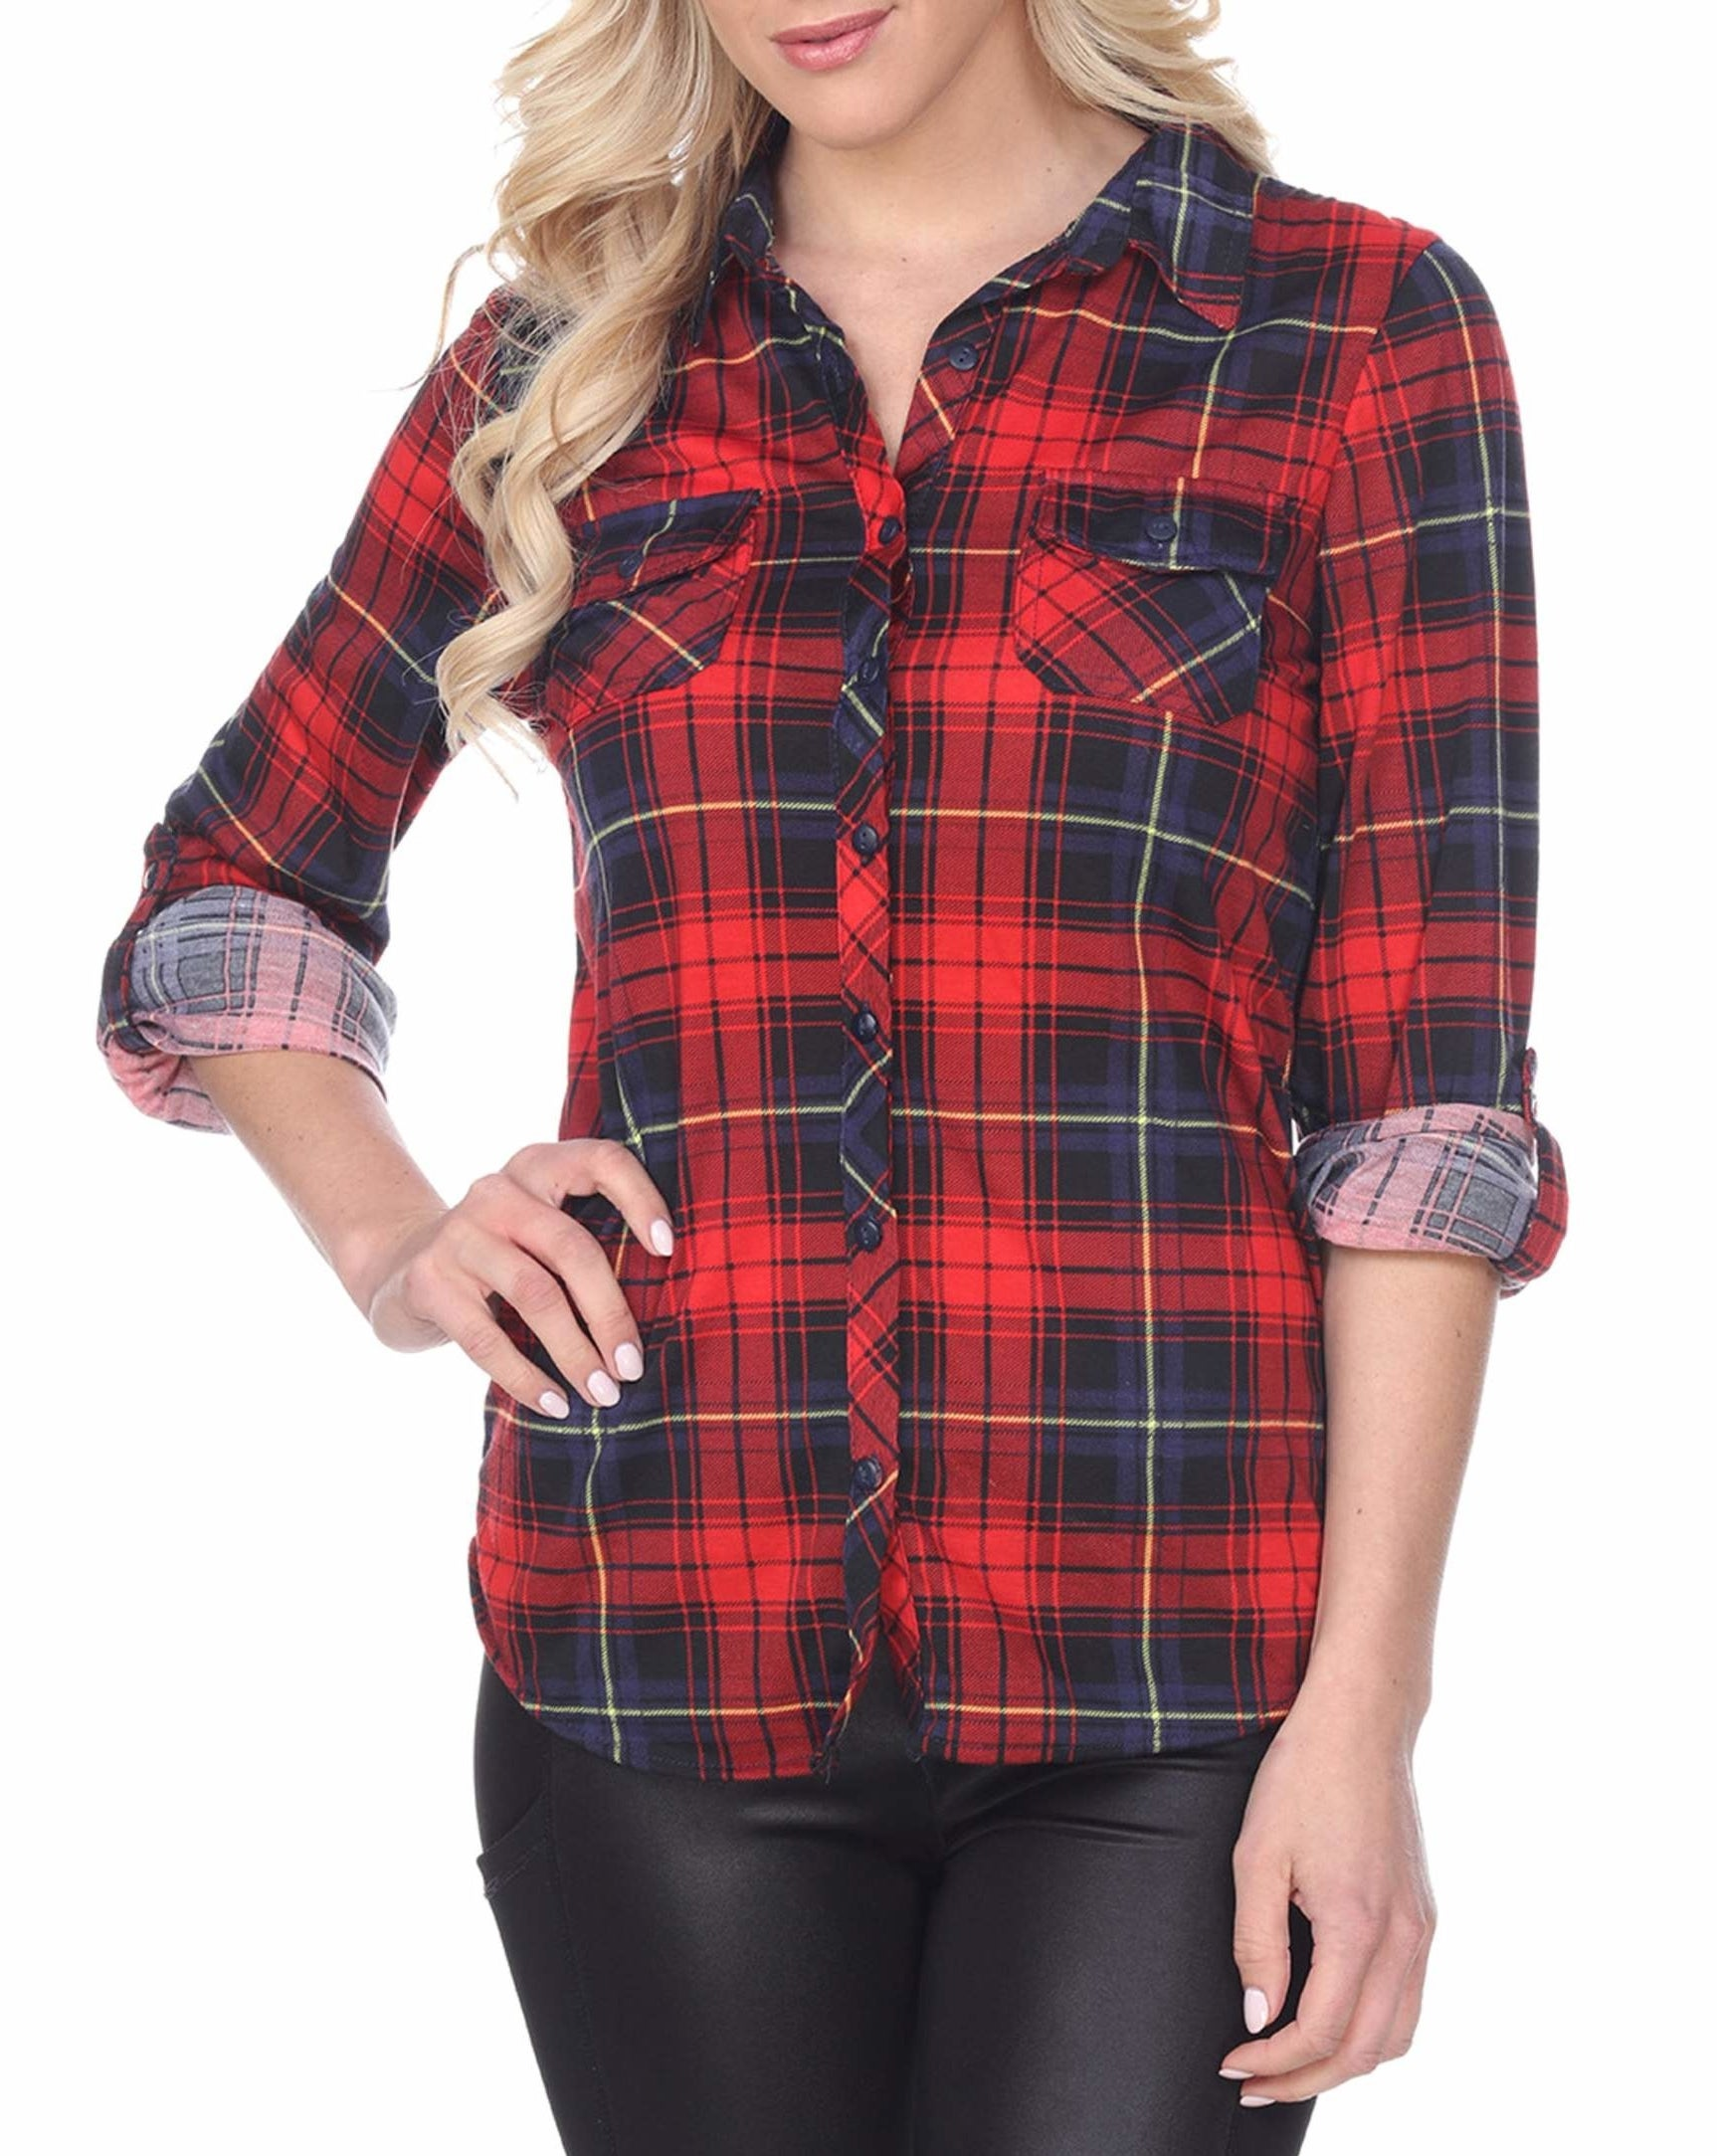 model wearing red and blue plaid button-up shirt